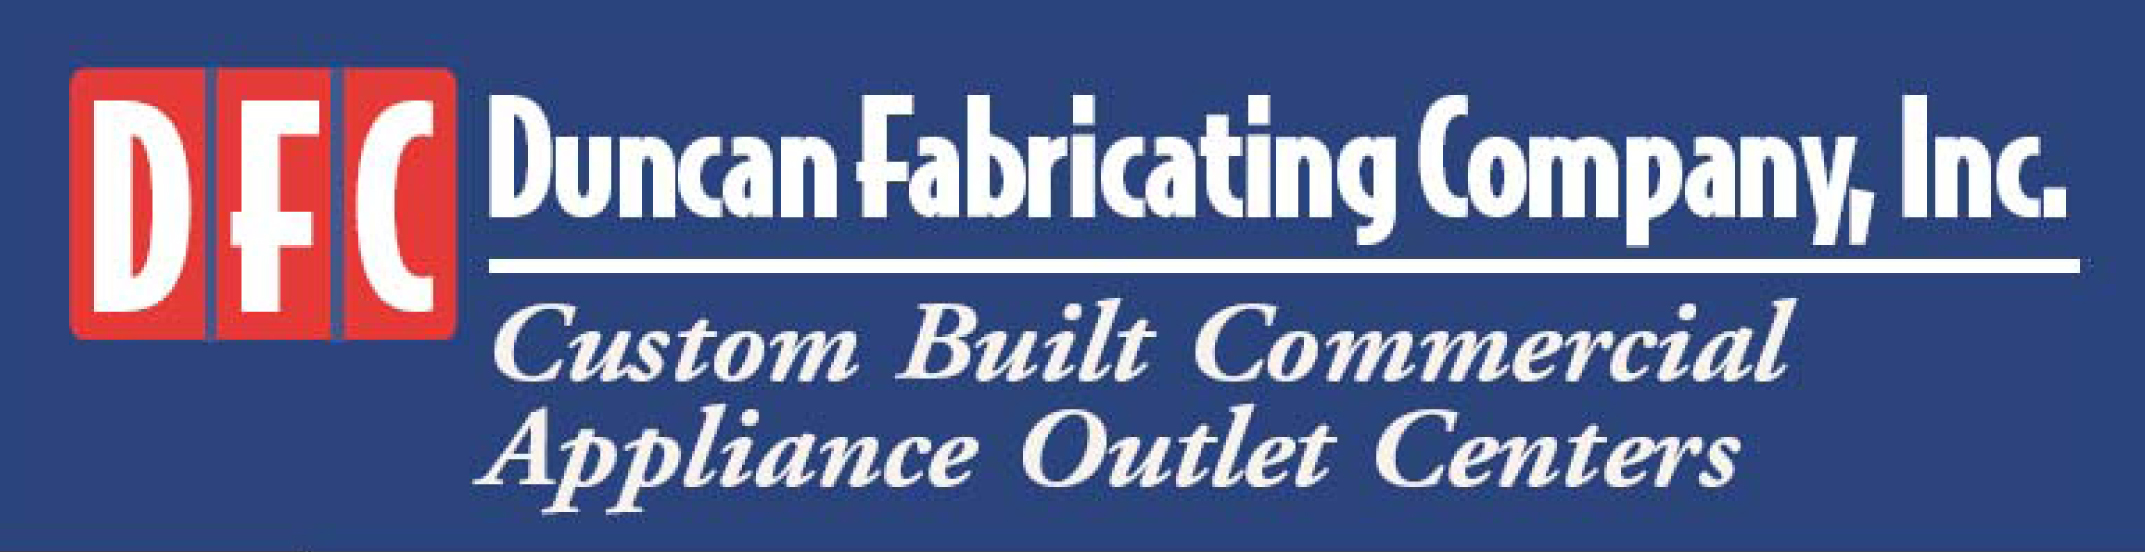 Equipment Marketers & Duncan Fabricating Company